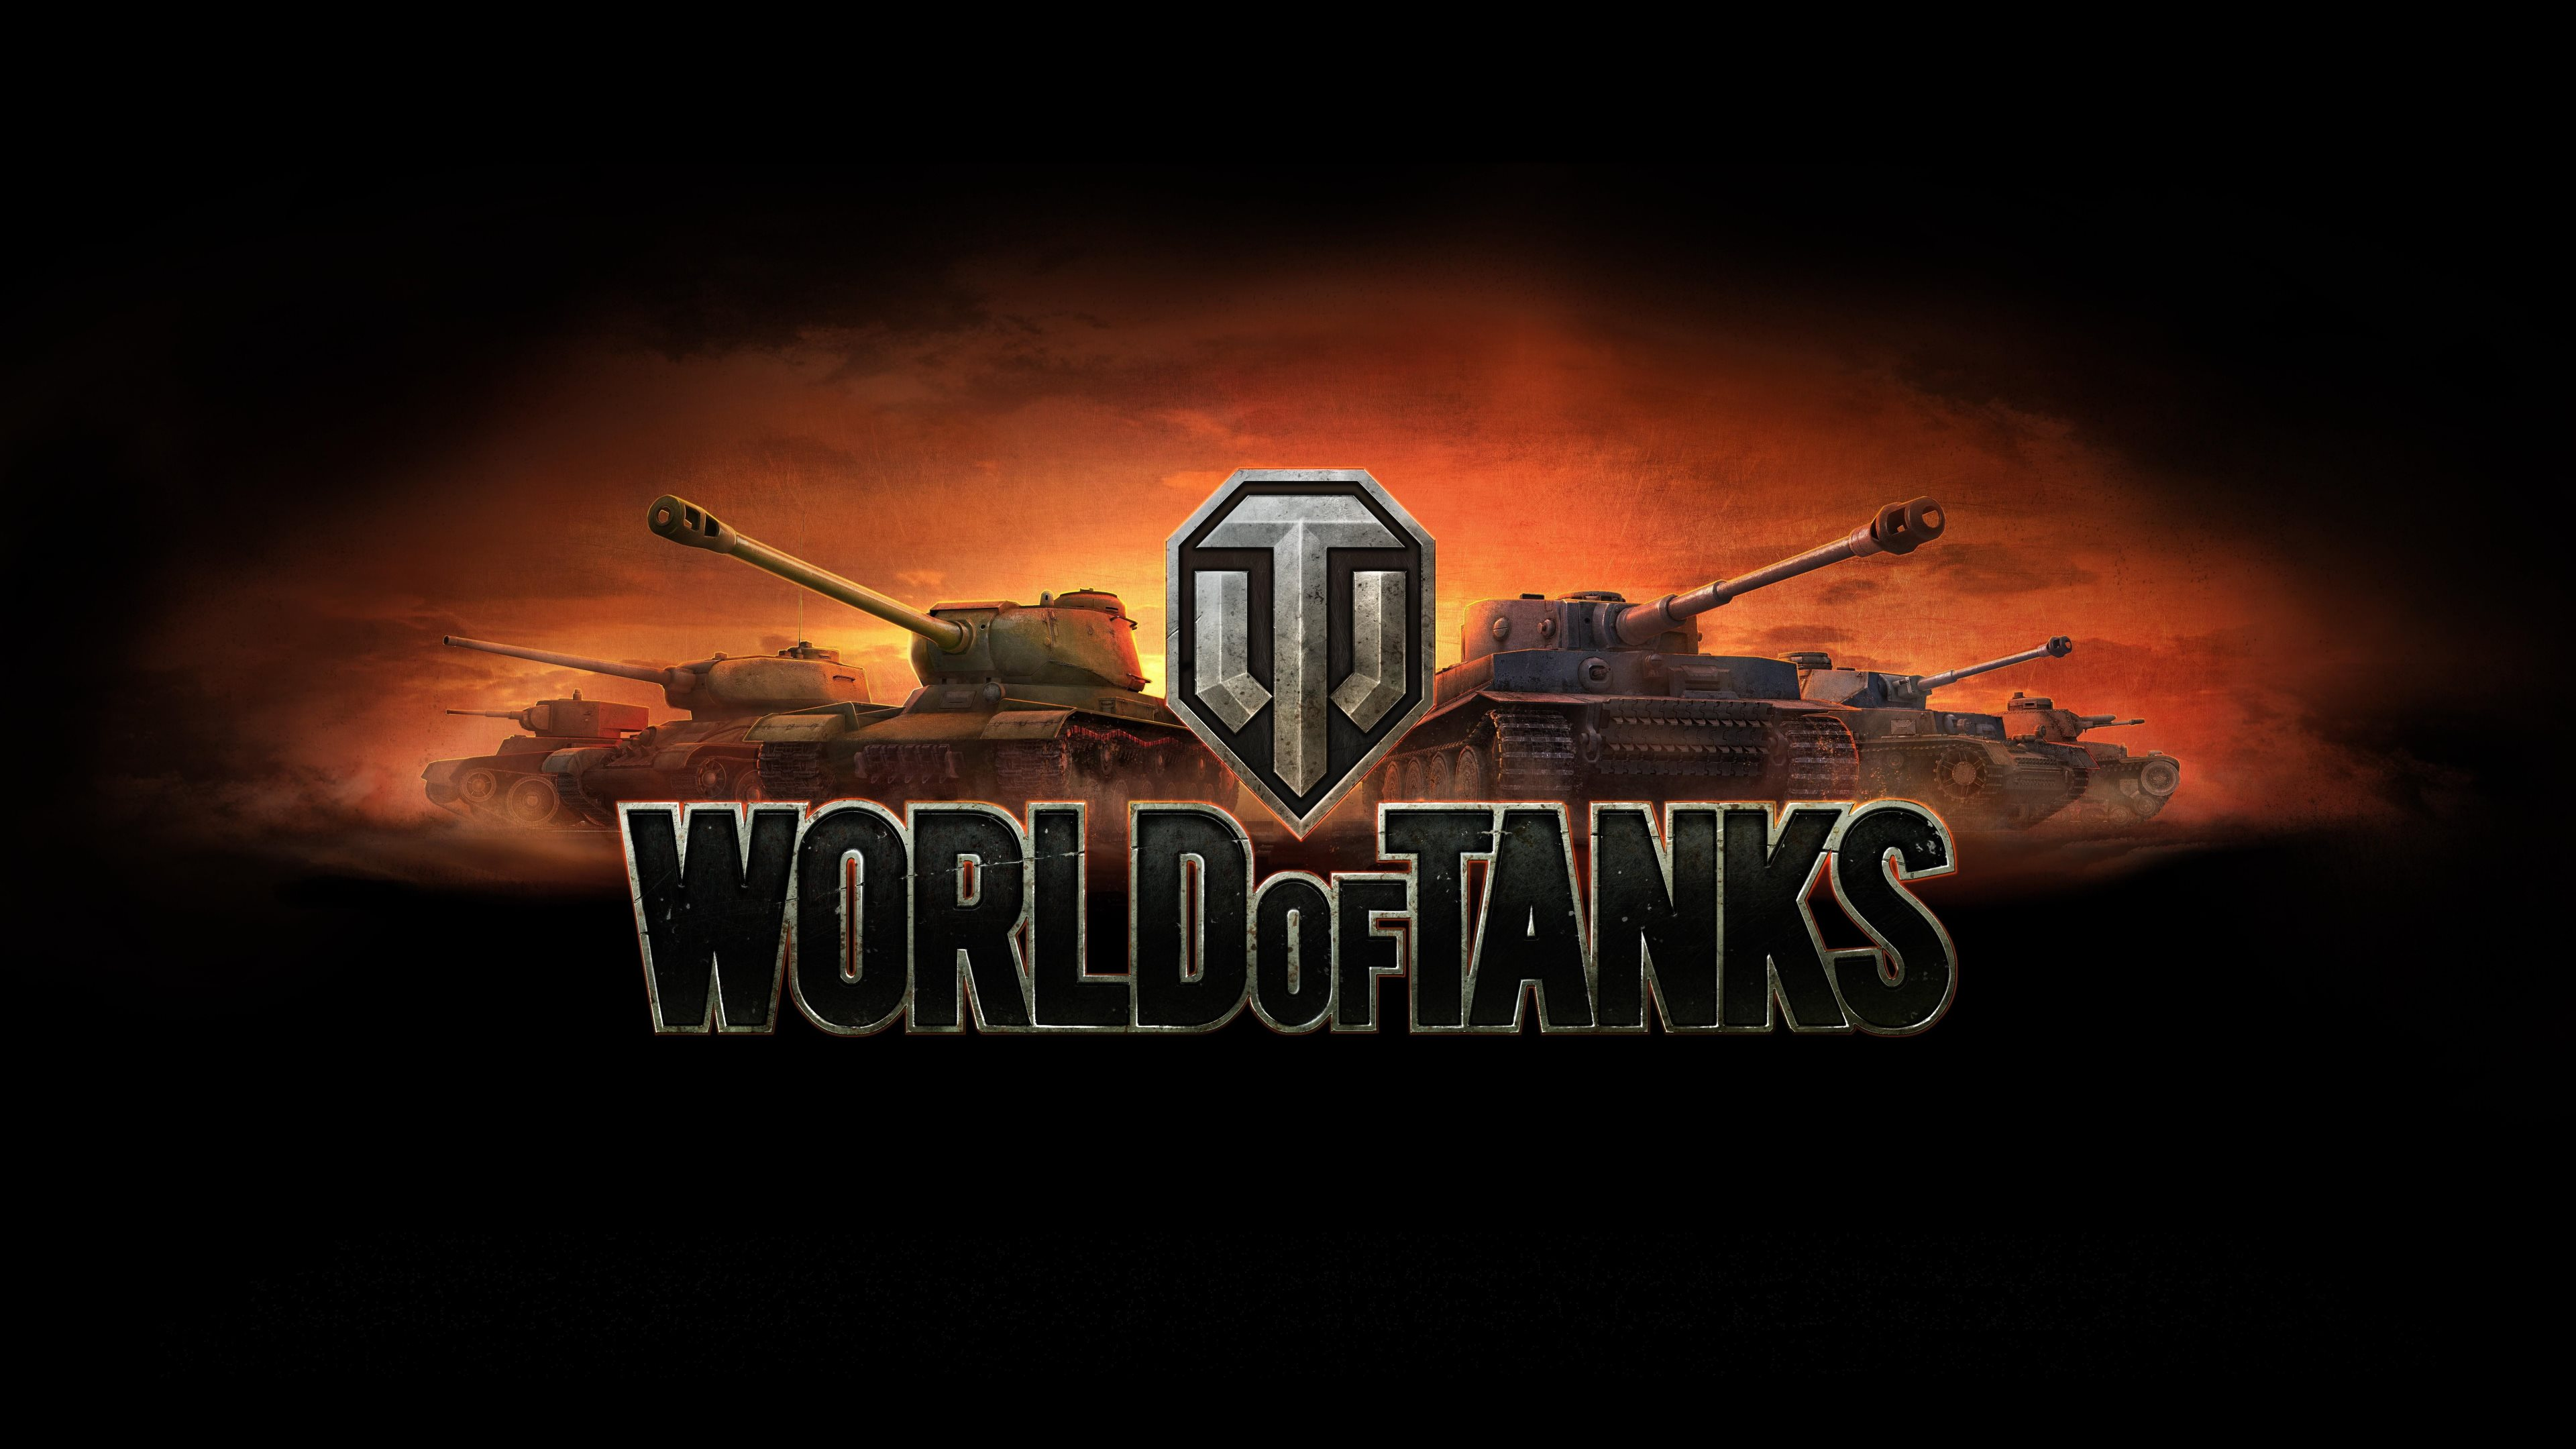 world of tanks wallpapers, pictures, images